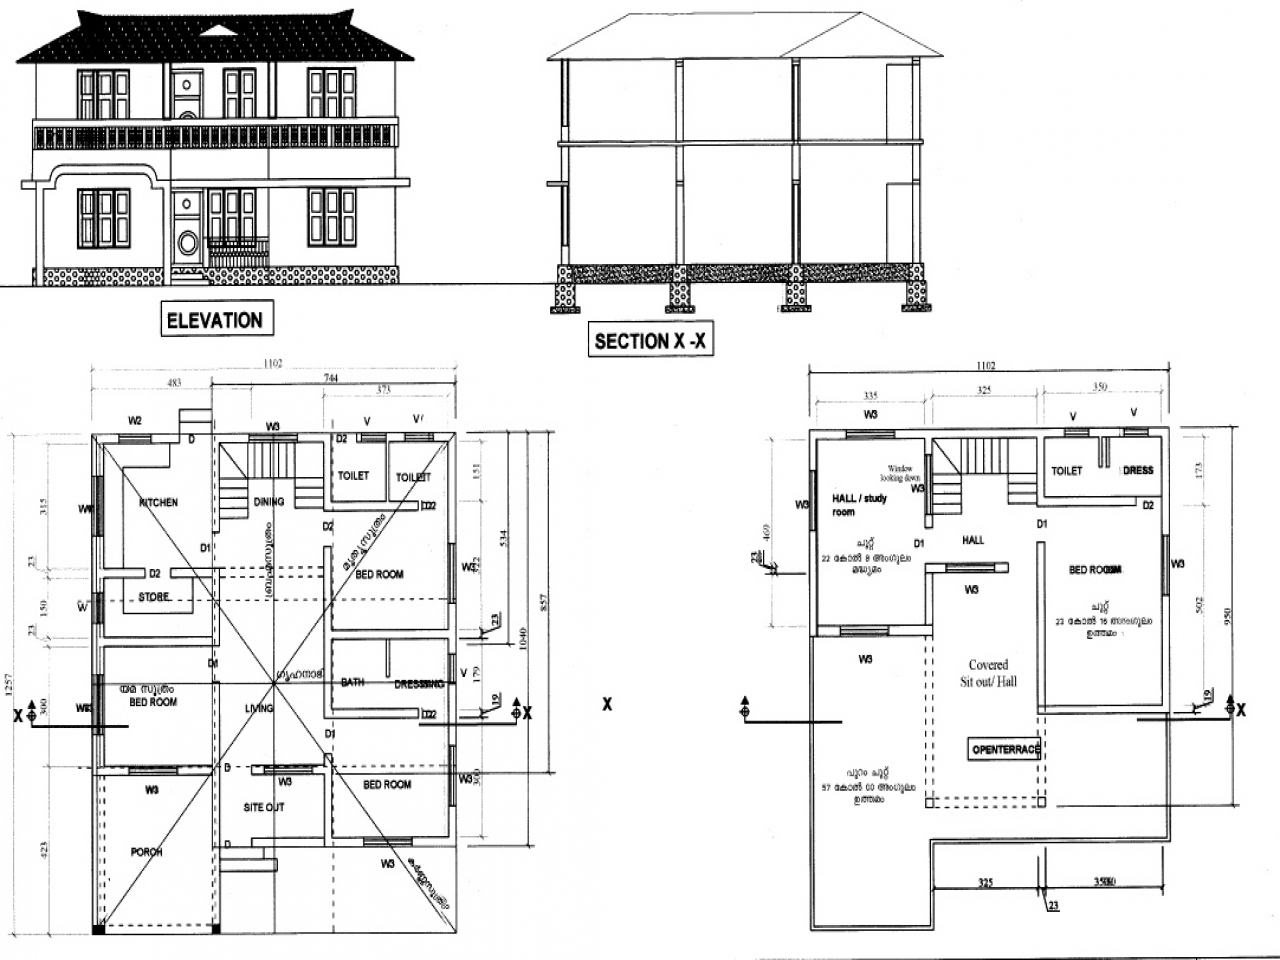 Building construction plans construction drawing plans for Construction plan drawing